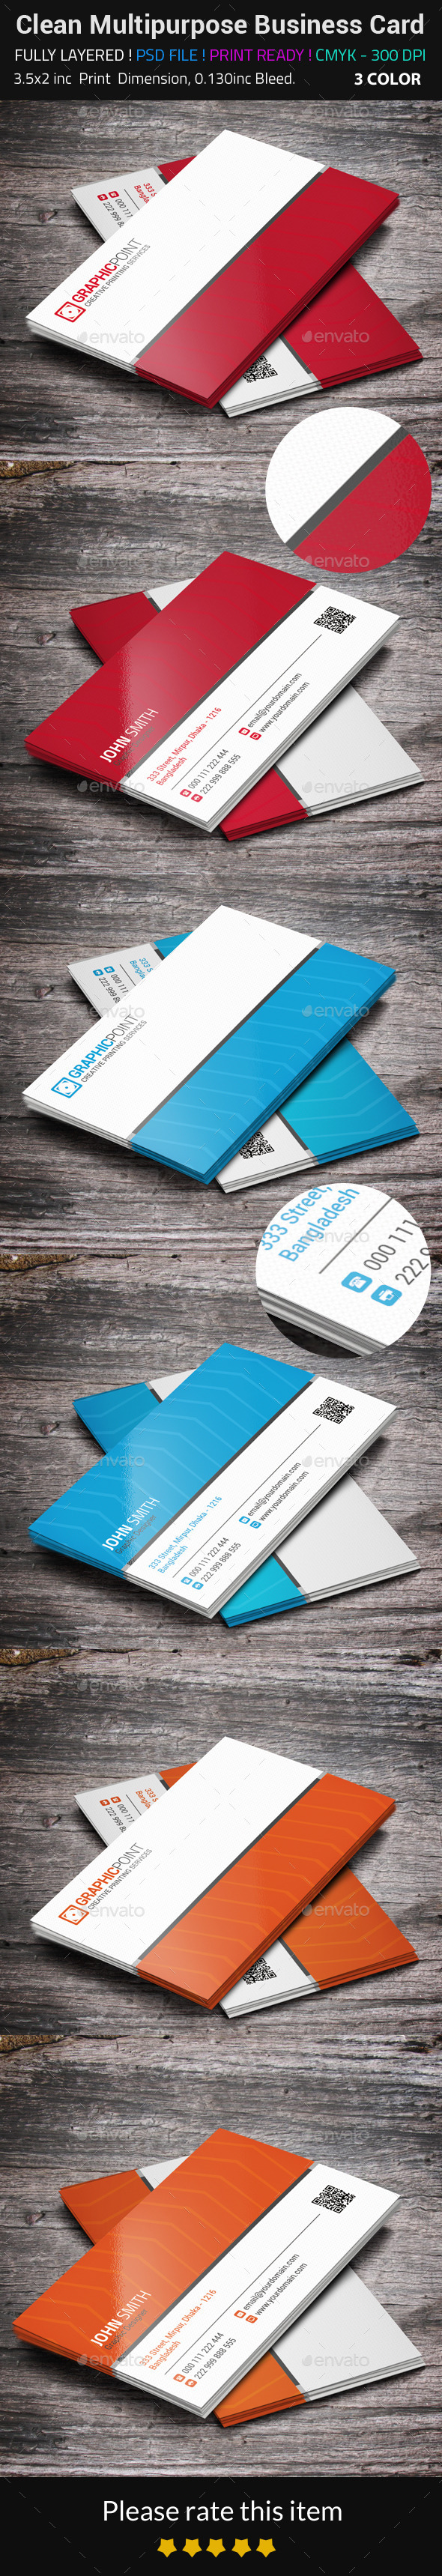 Clean Multipurpose Business Card - Corporate Business Cards